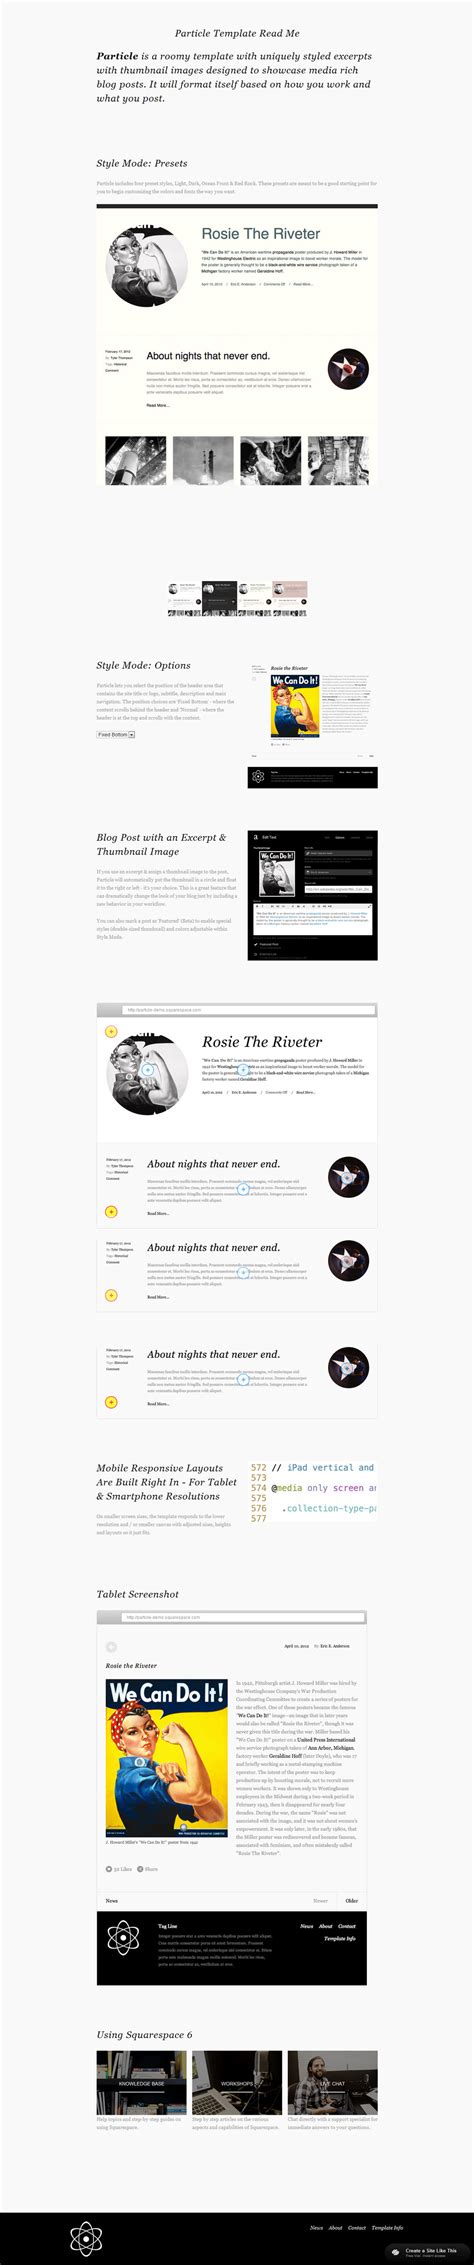 Particle Read Me Jpg Squarespace Personal Website Templates